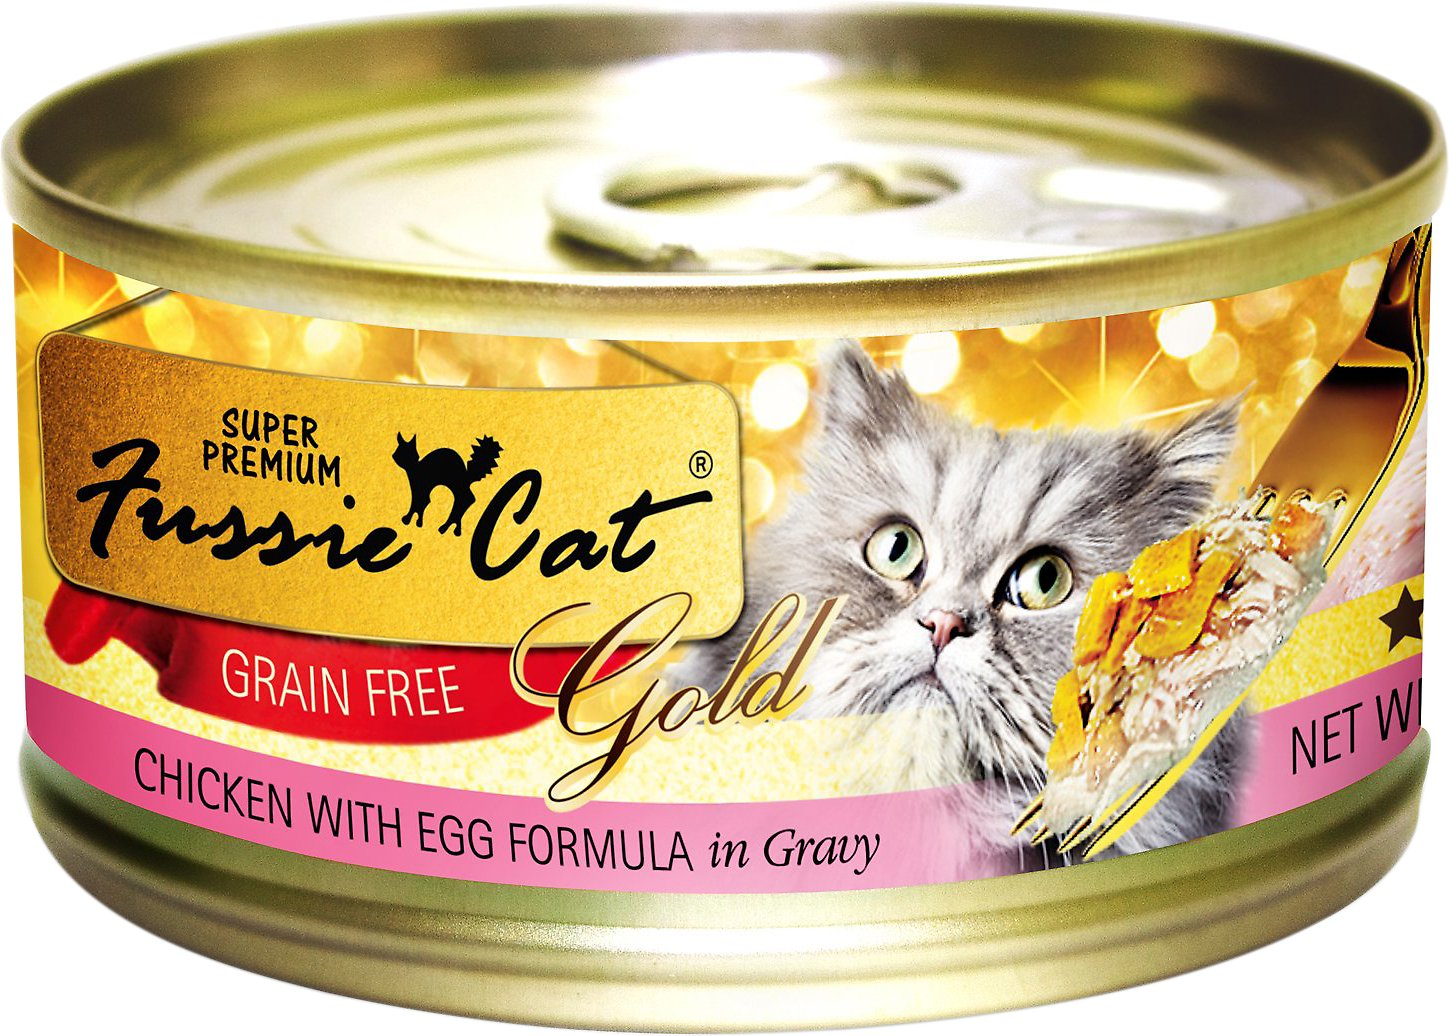 Fussie Cat Super Premium Chicken With Egg Formula In Gravy Grain Free Canned Cat Food 2 82 Oz Case Of 24 Chewy Com